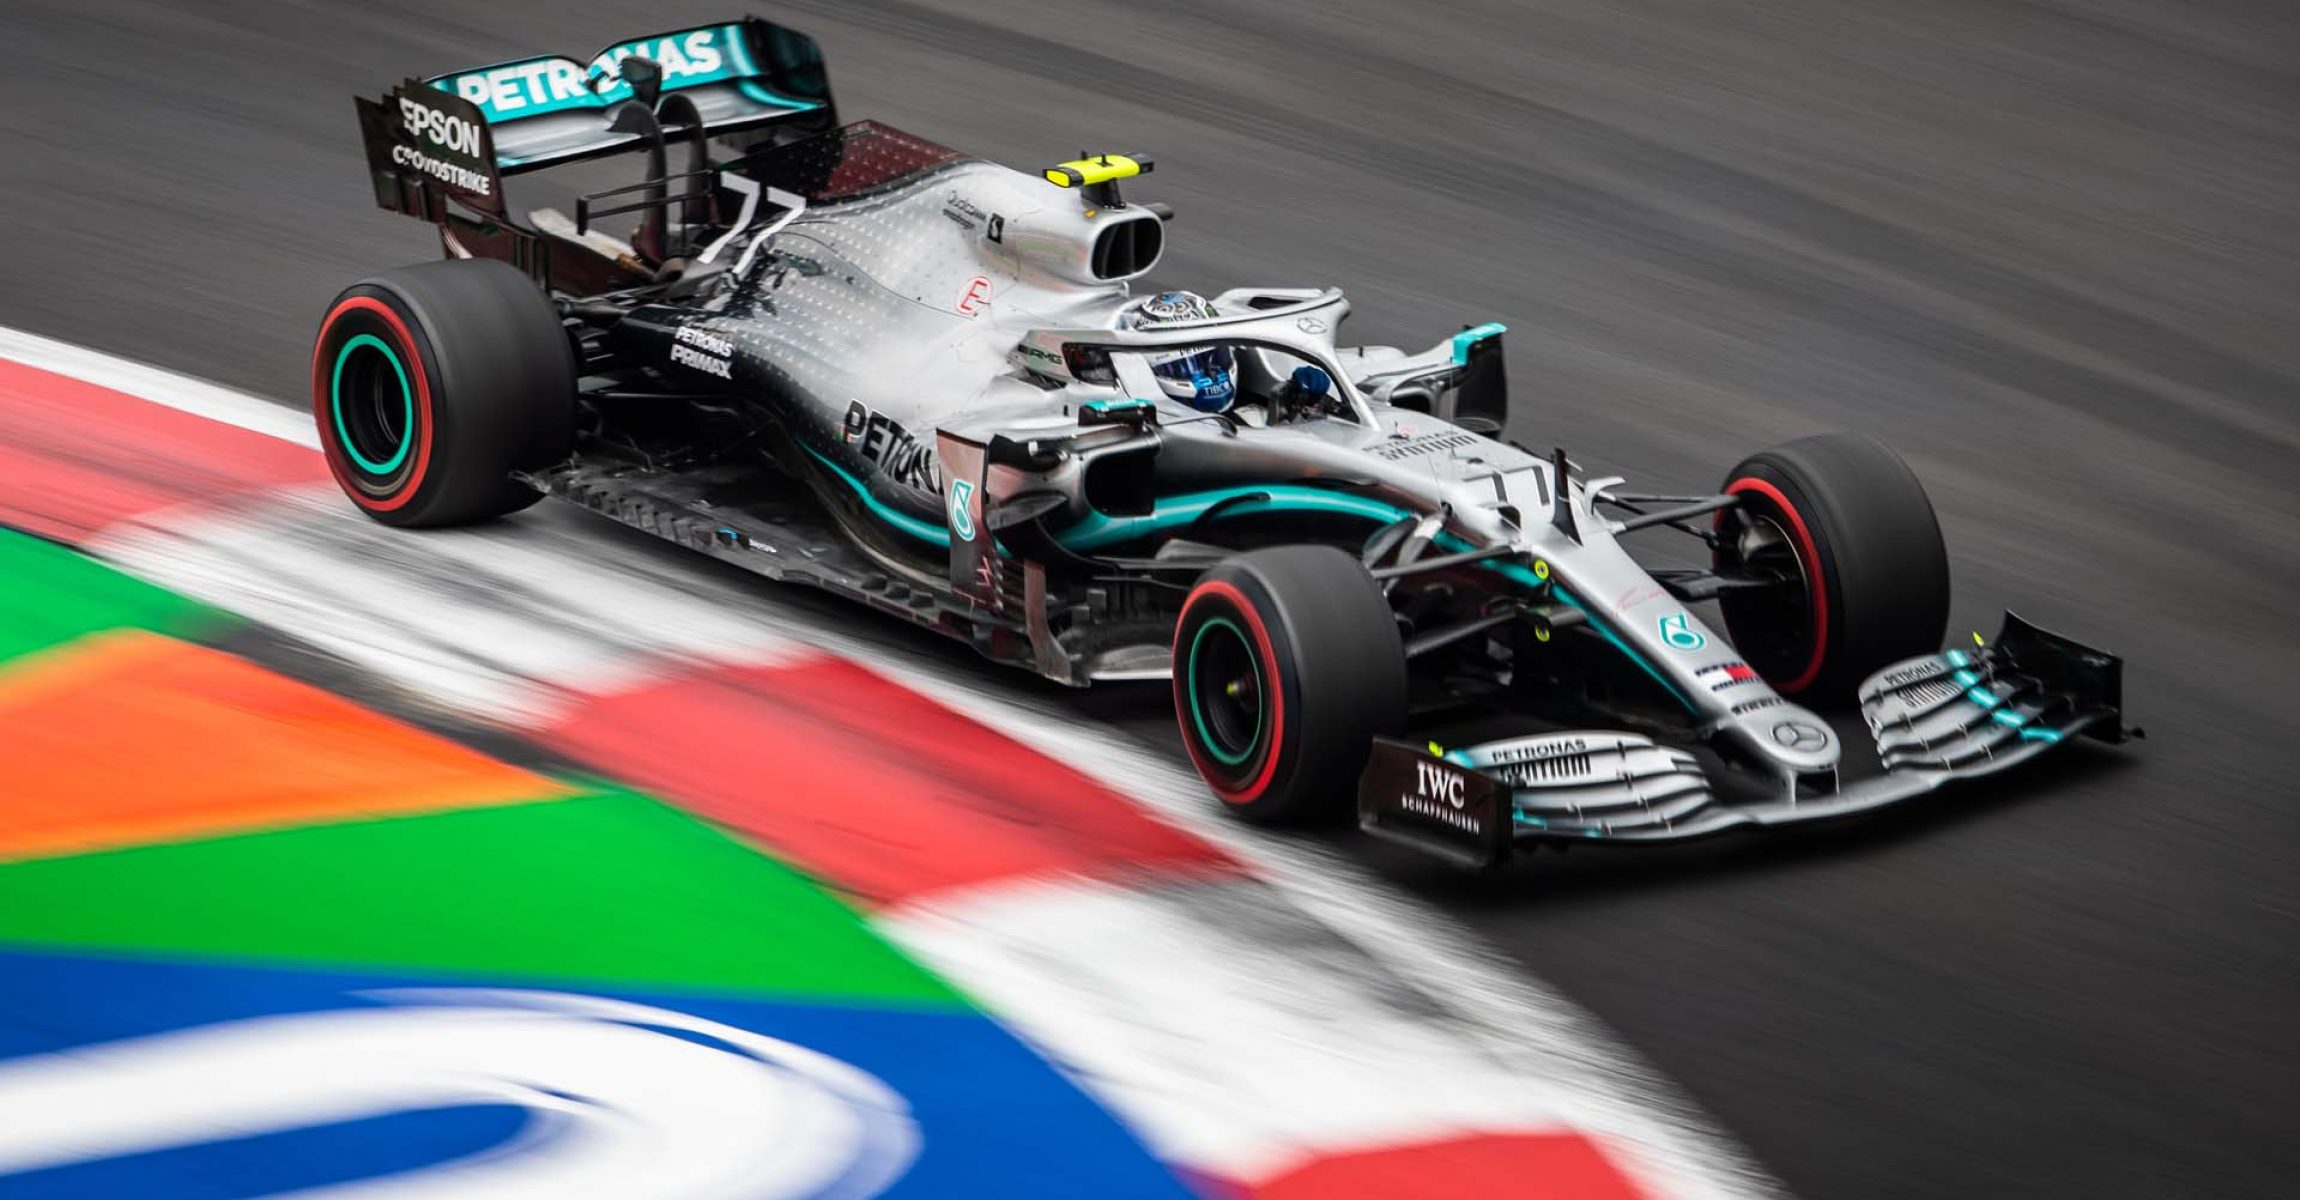 2019 Mexican Grand Prix, Saturday - Wolfgang Wilhelm Valtteri Bottas Mercedes